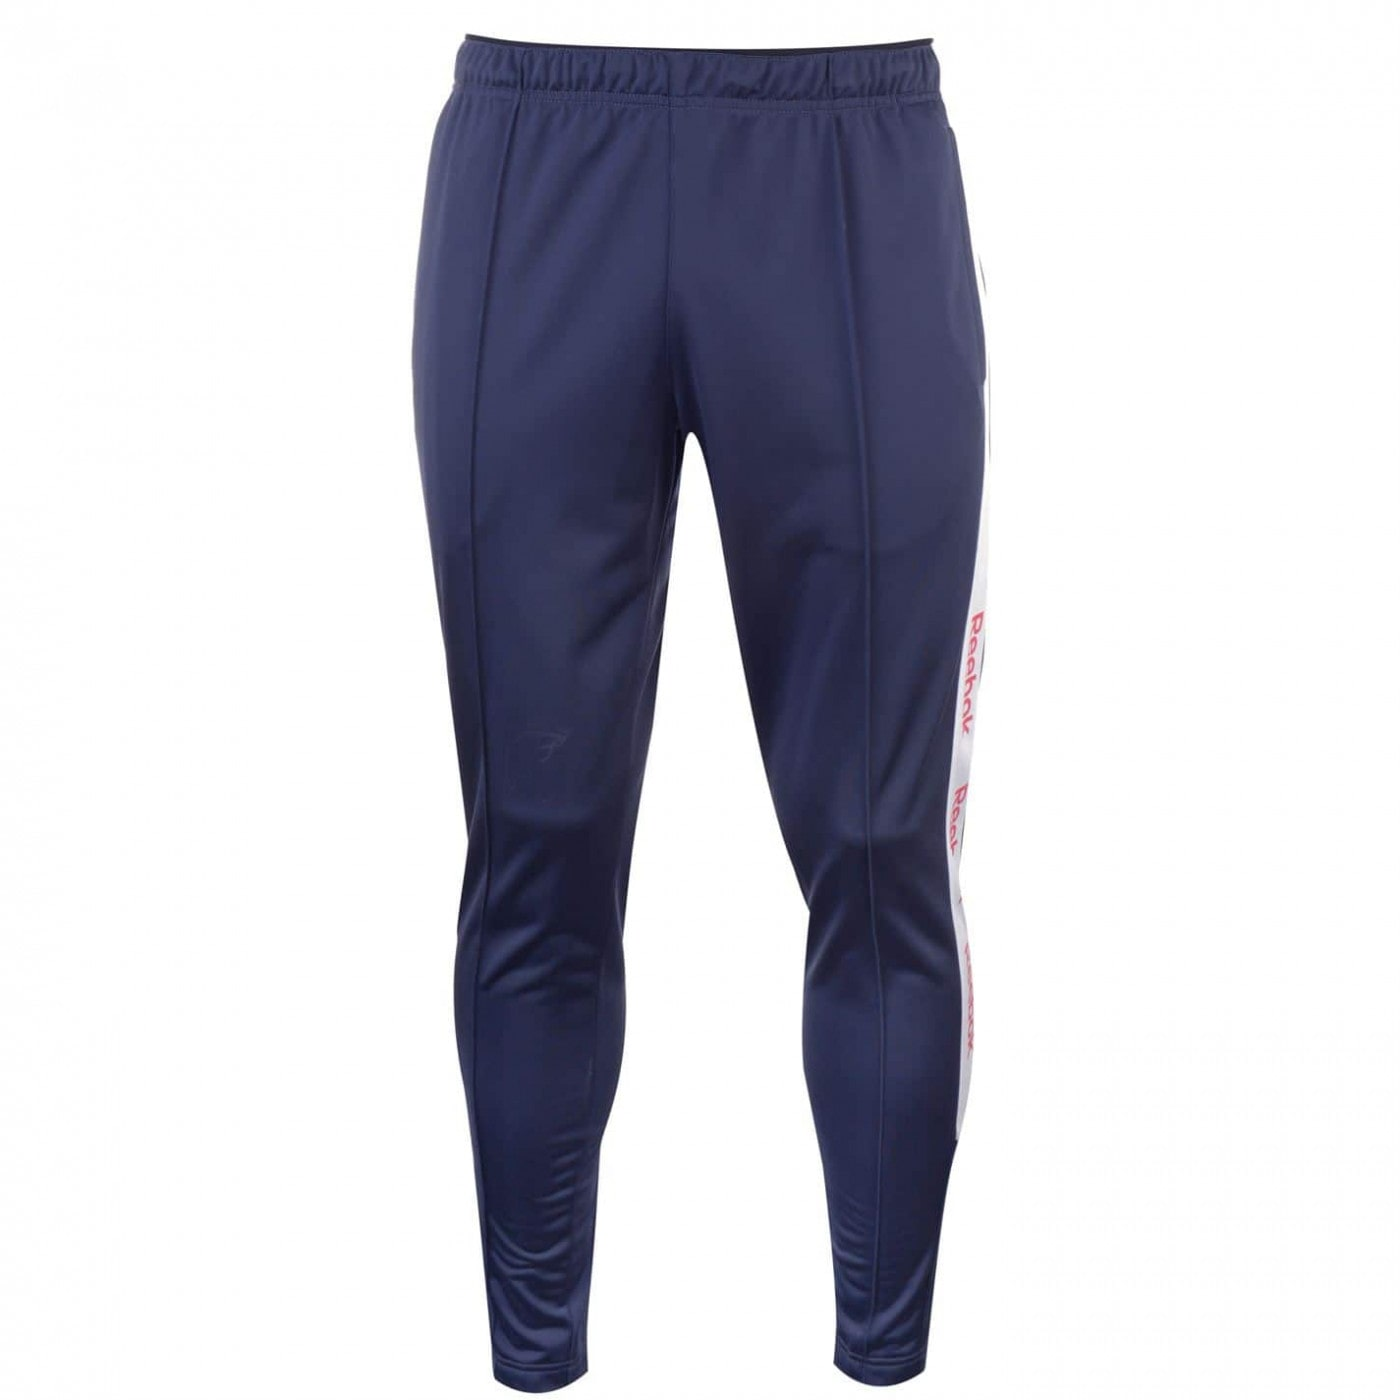 Reebok Taped Trackster Tracksuit Bottoms Mens